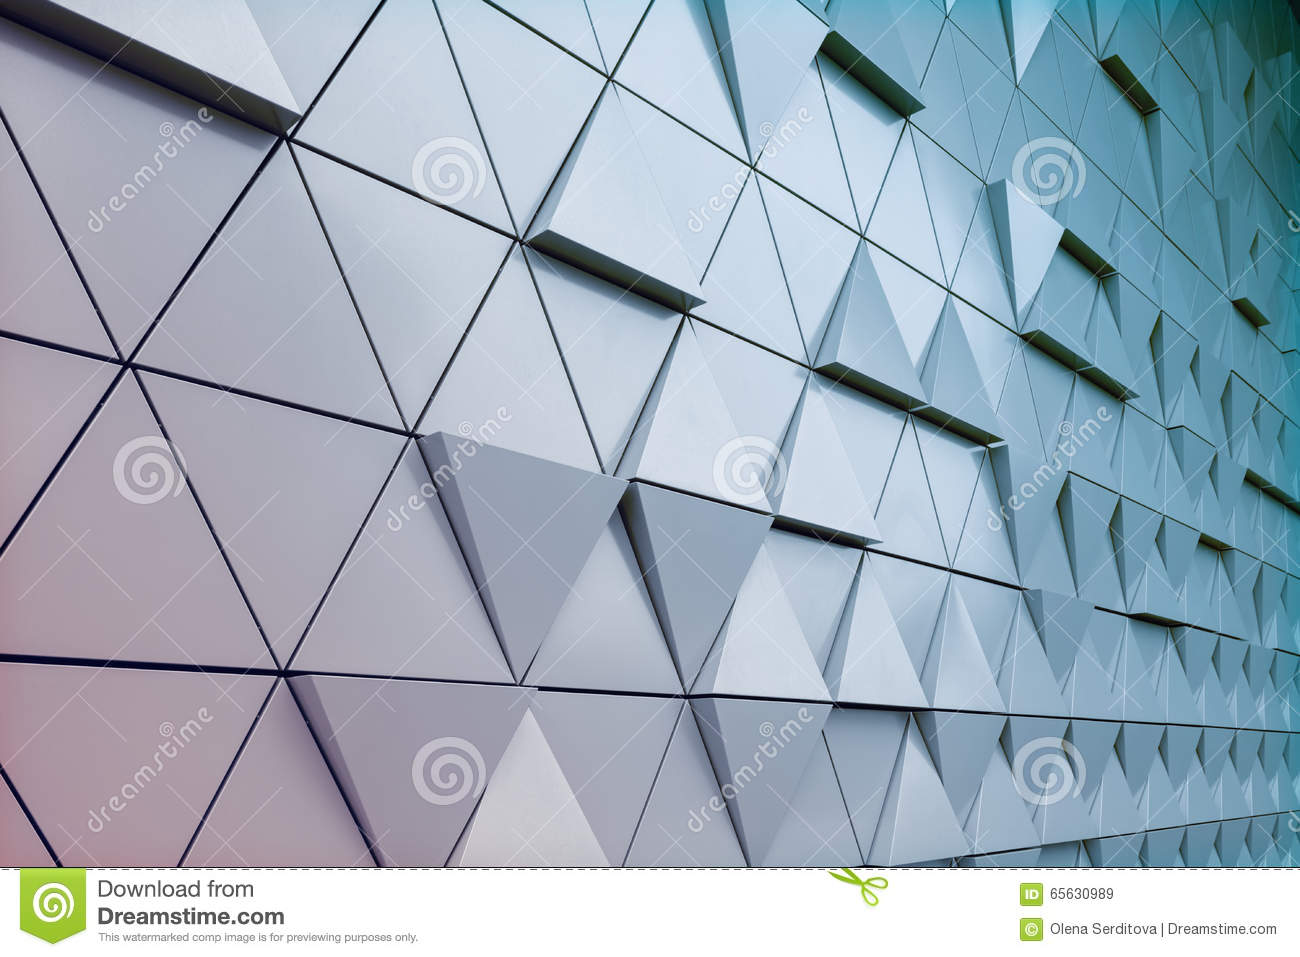 Groupe architectural abstrait